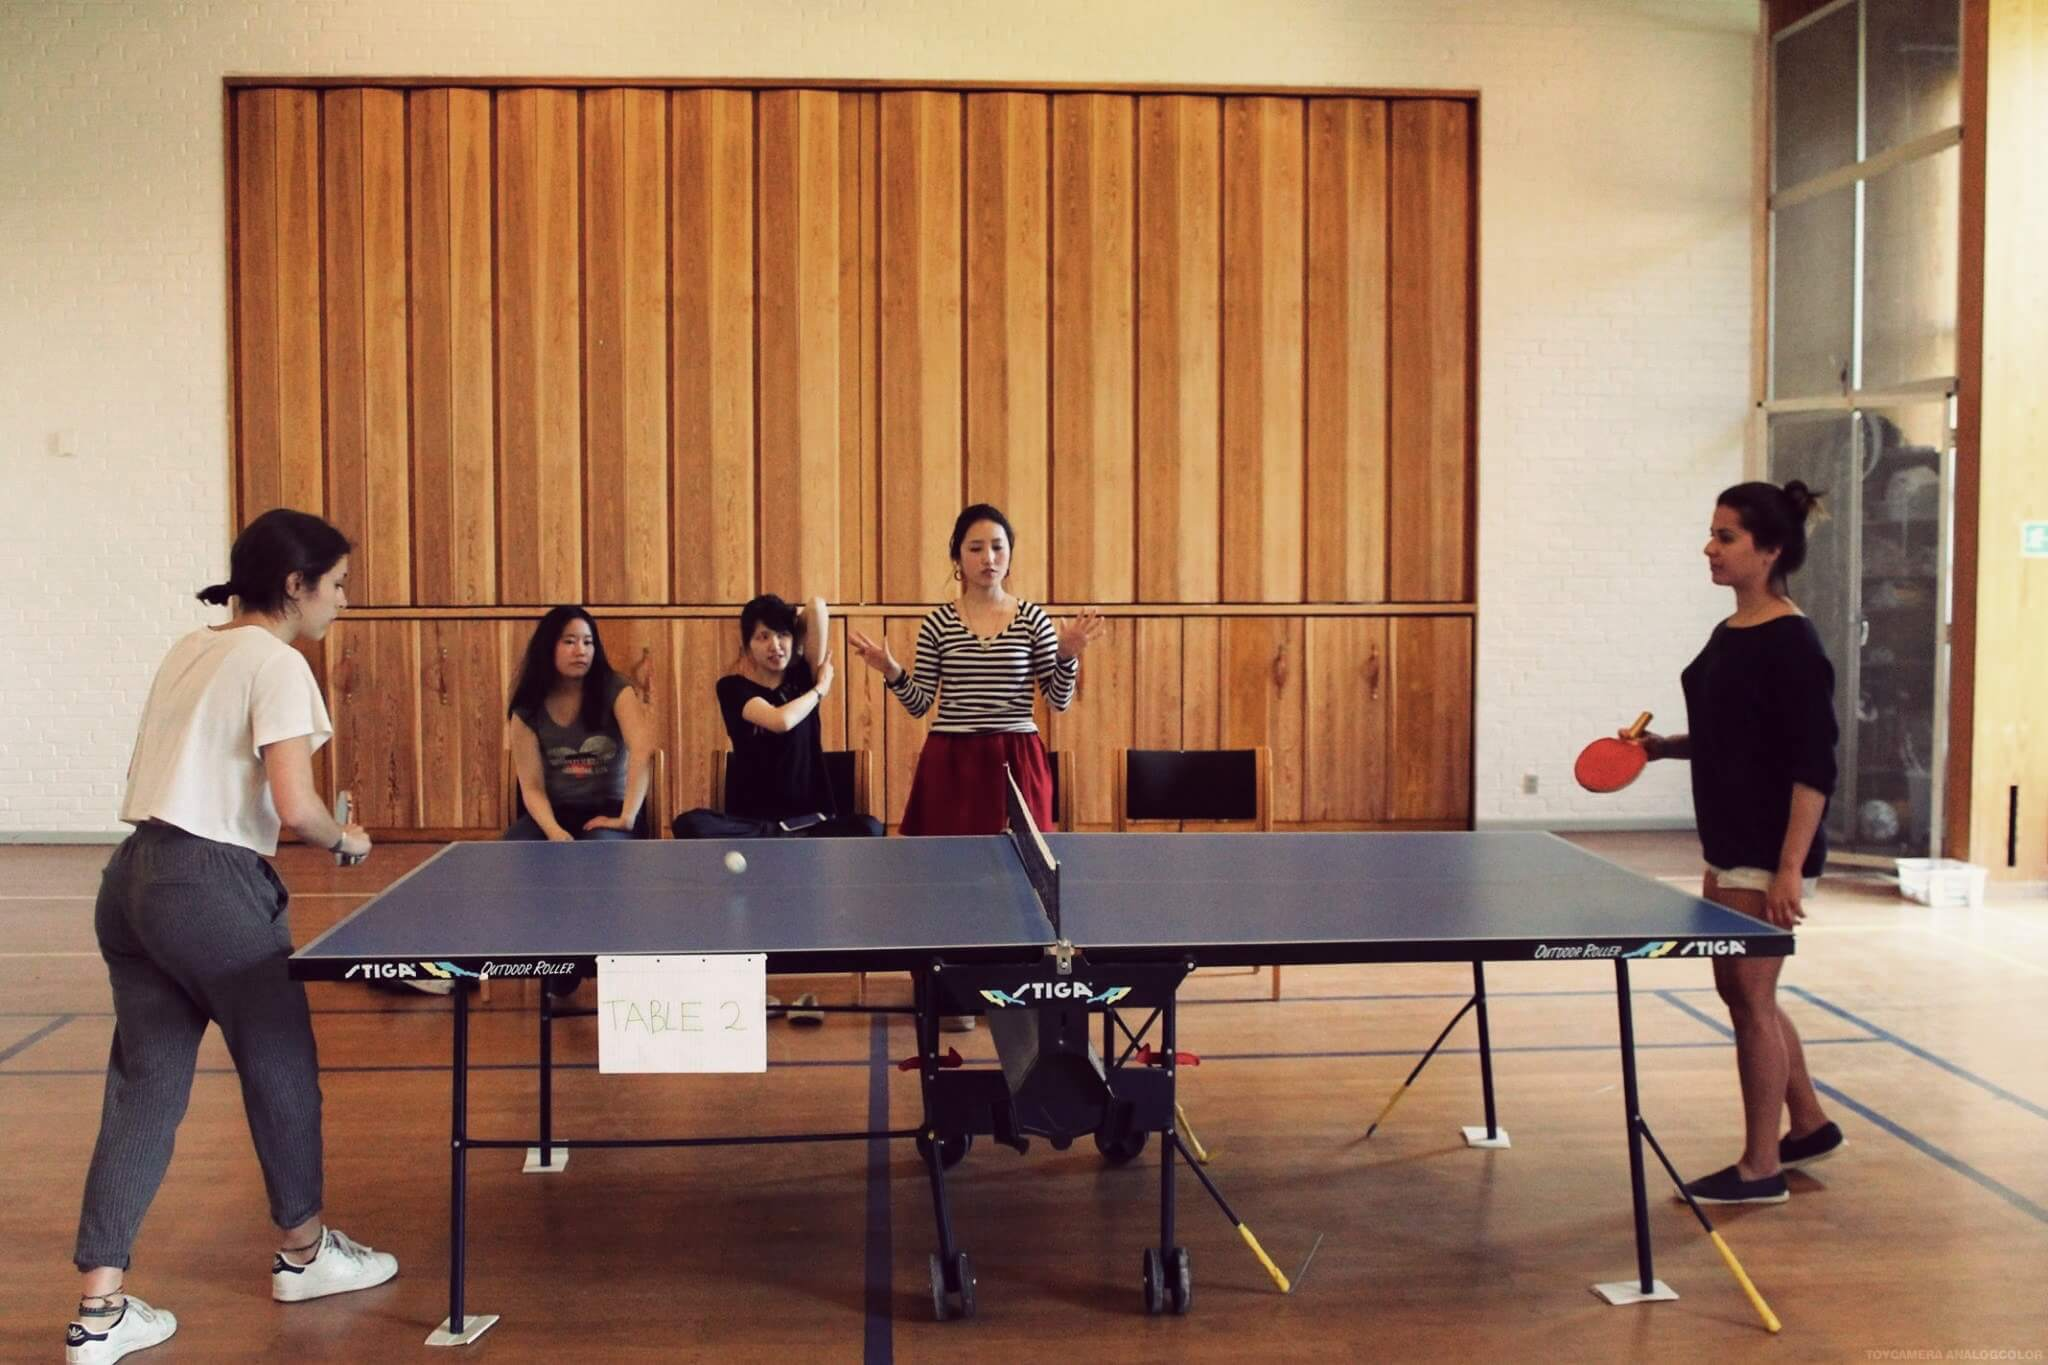 Folk High School Ping pong tournament at International People's College in Denmark